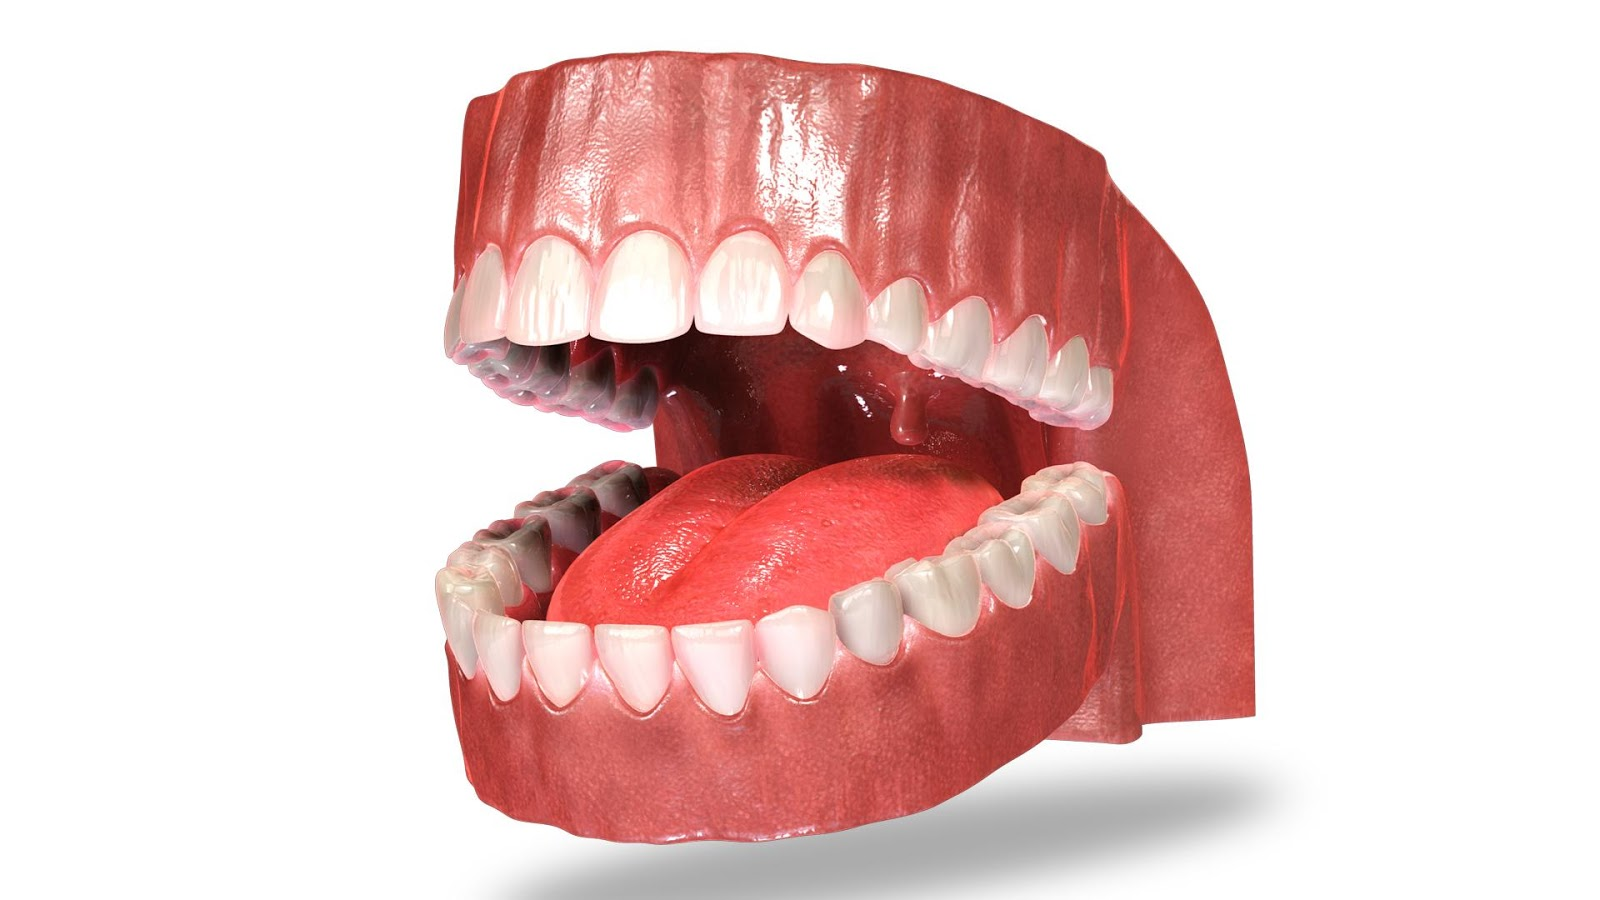 Vr teeth anatomy android apps on google play